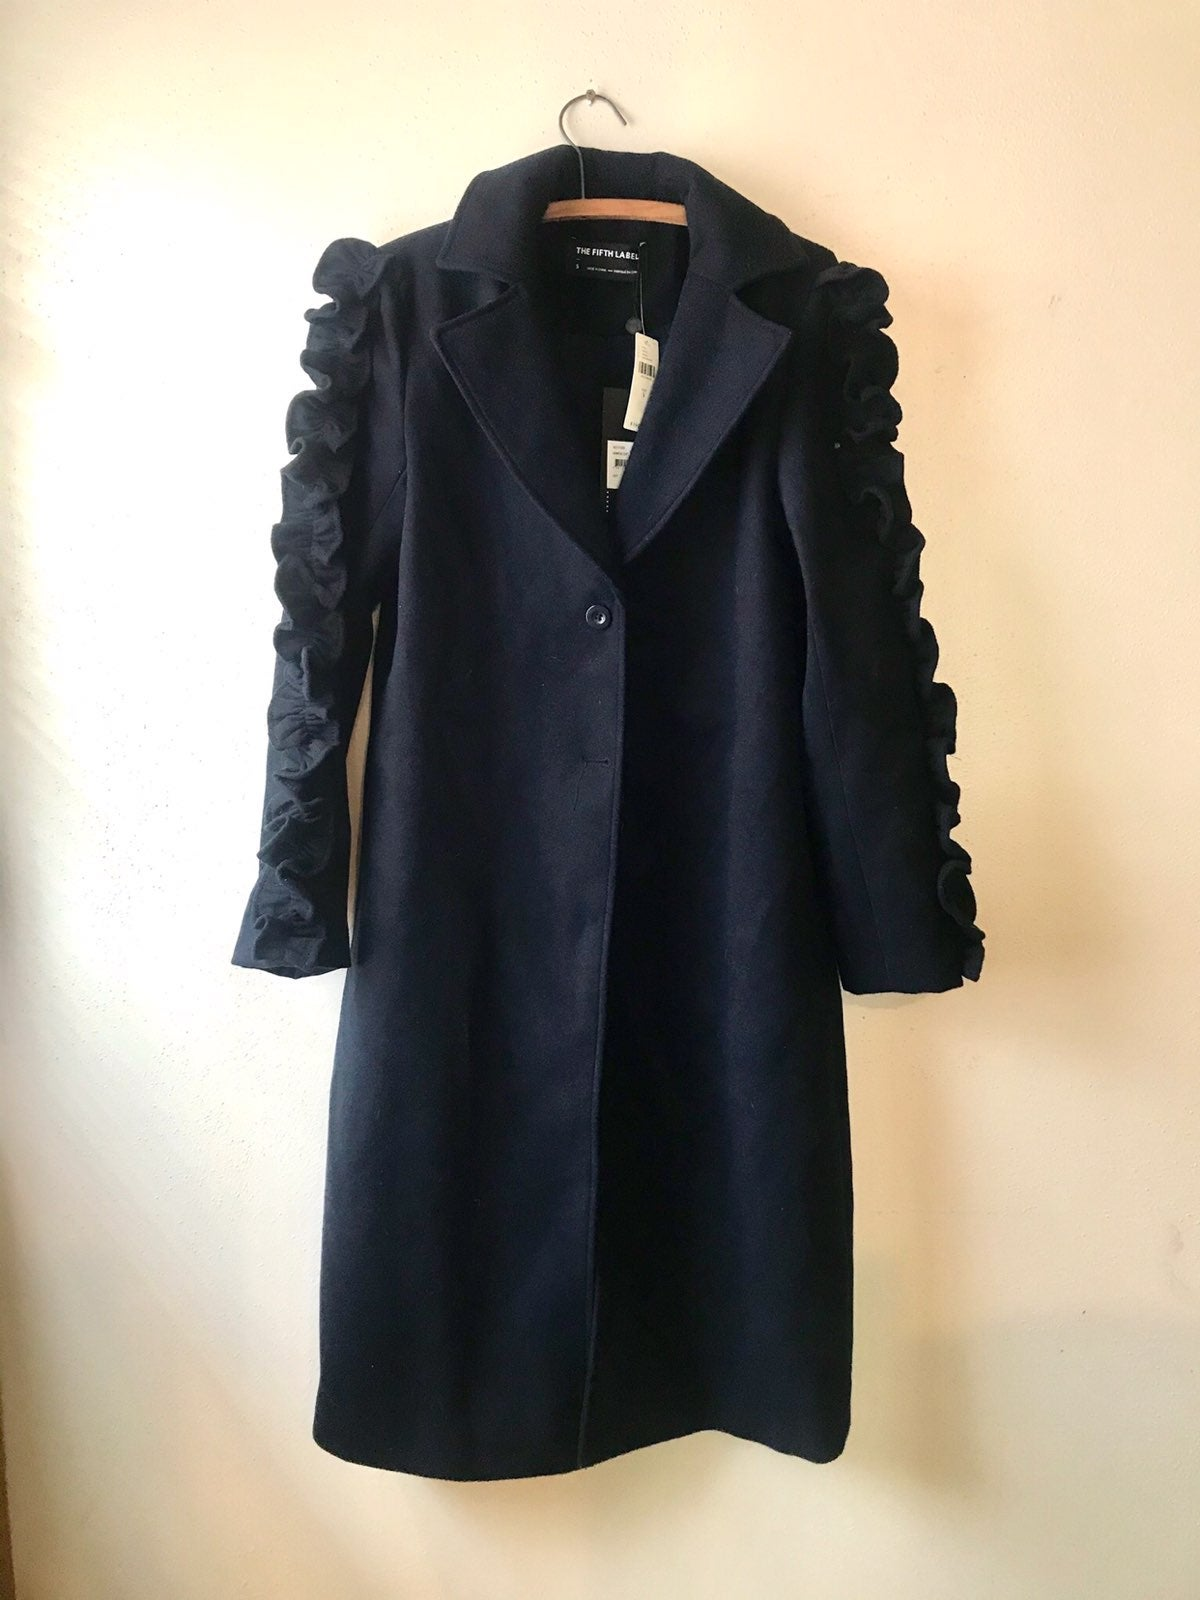 Anthro Jacket - The Fifth Label (NWT) S